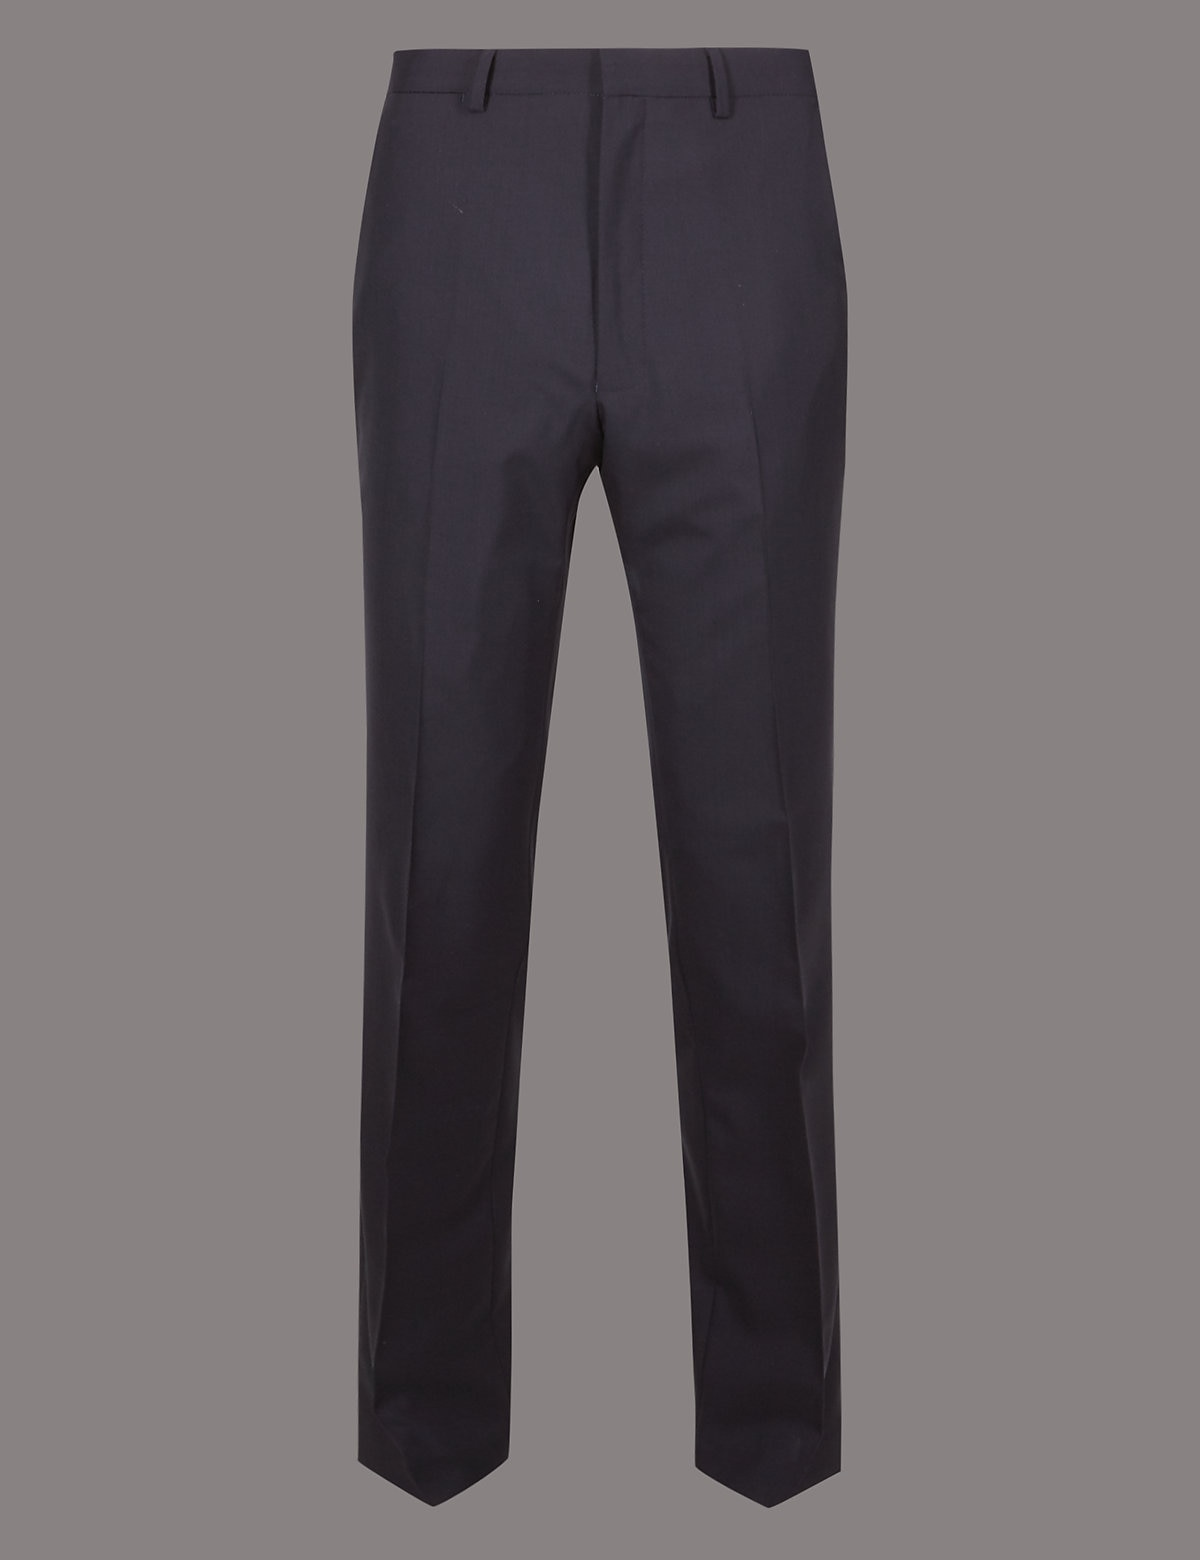 Marks & Spencer Dark Navy Navy Tailored Fit Italian Wool Trousers